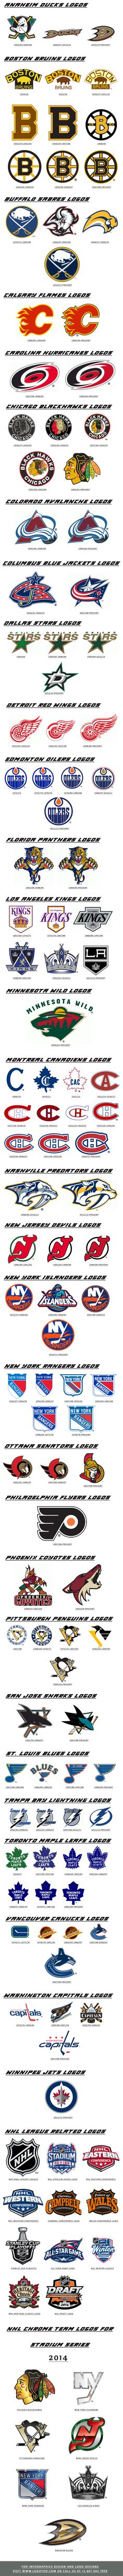 NHL Logo Designs Through the Years